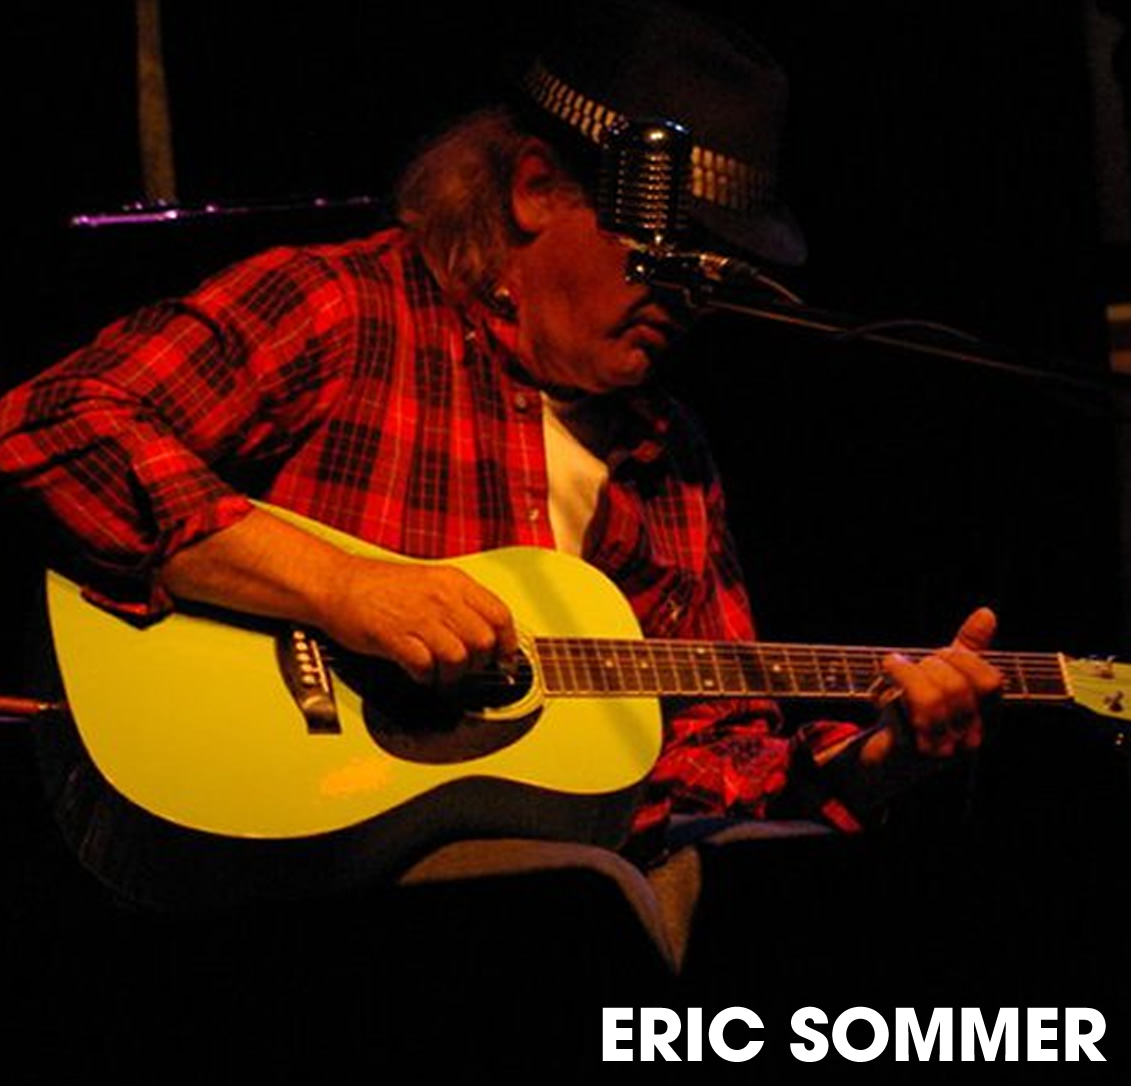 pop americana artist eric sommer in newport ky at the southgate house sept 26th will showcase. Black Bedroom Furniture Sets. Home Design Ideas